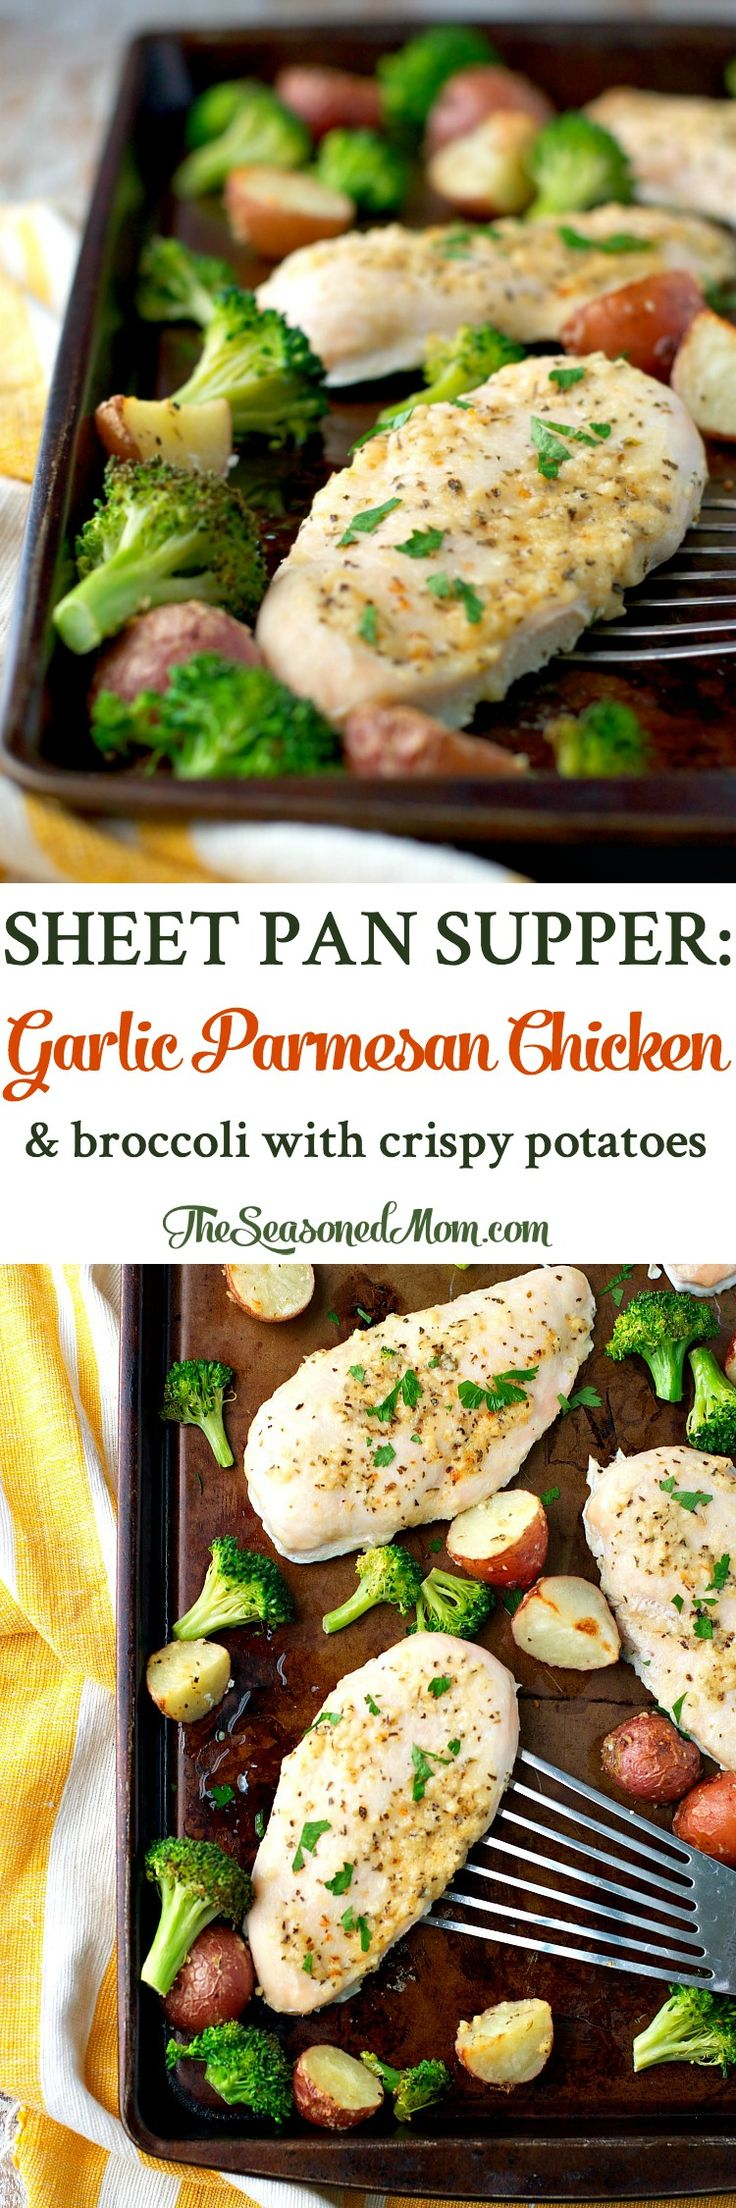 Just 10 minutes of prep and one tray necessary for this Sheet Pan Supper: Garlic Parmesan Chicken and Broccoli with Crispy Potatoes! We love easy dinners!